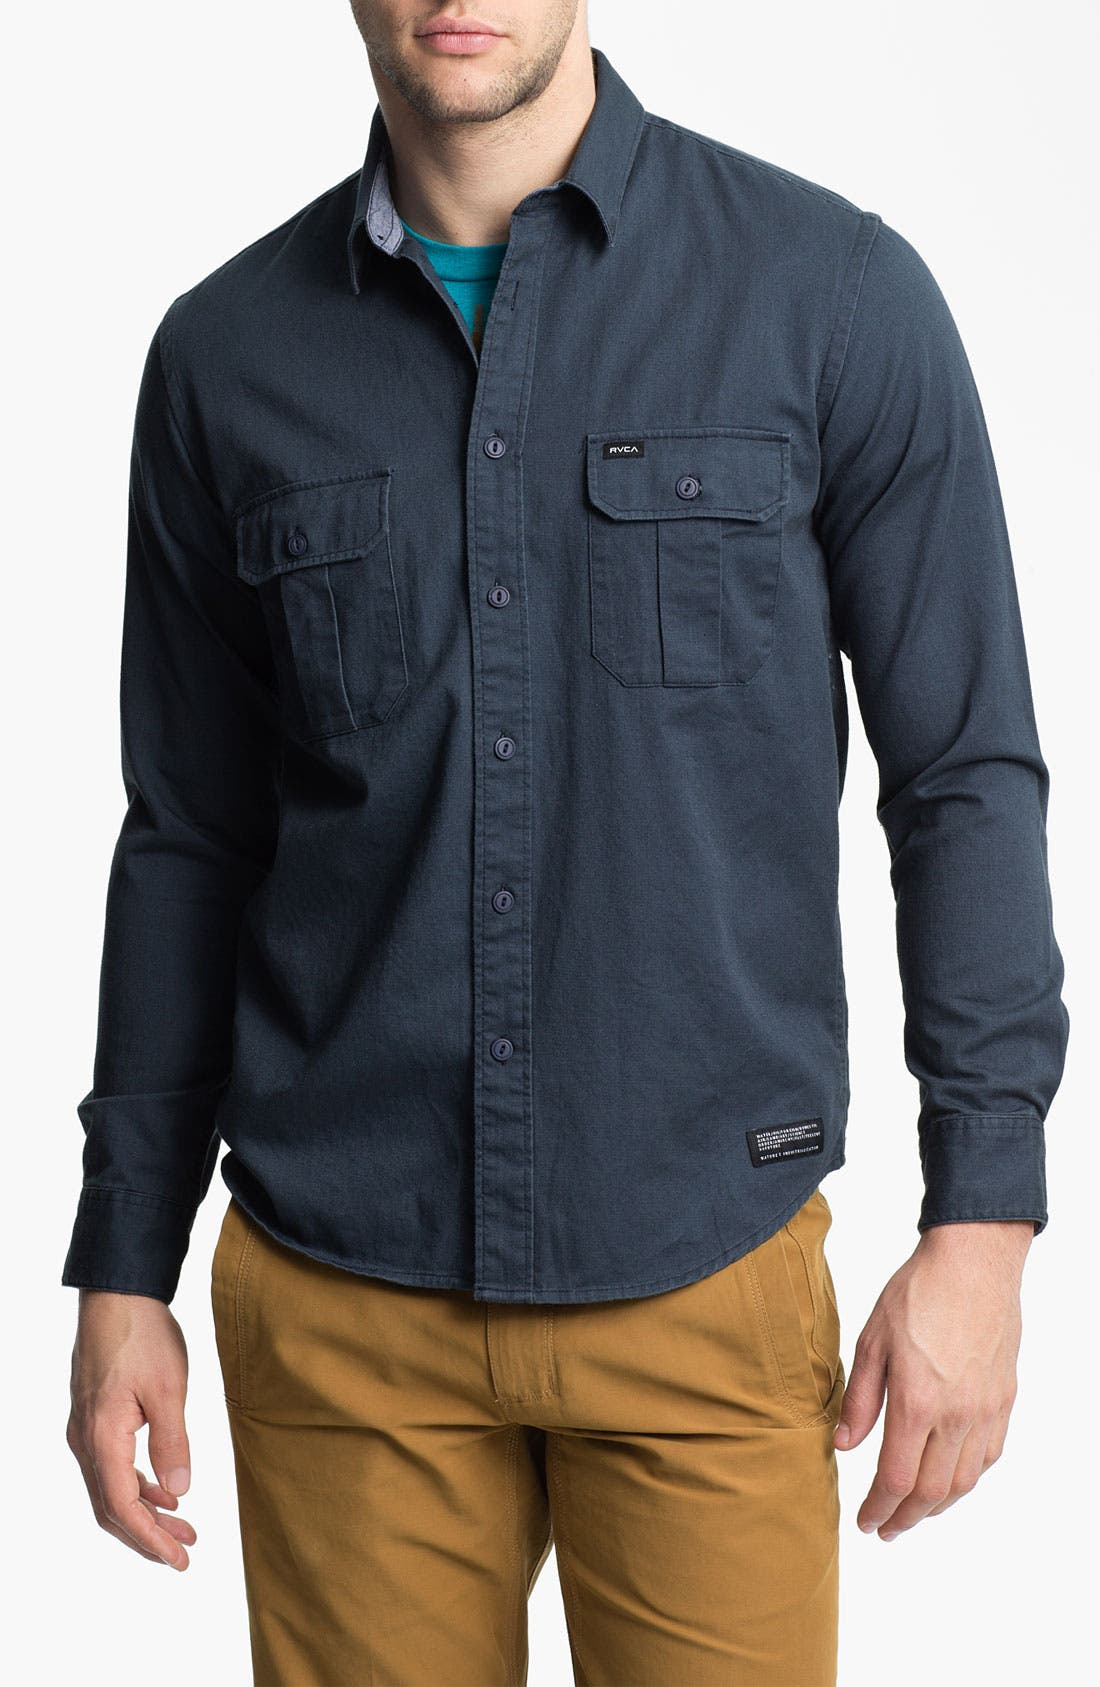 Alternate Image 1 Selected - RVCA 'Wrenchman' Woven Shirt